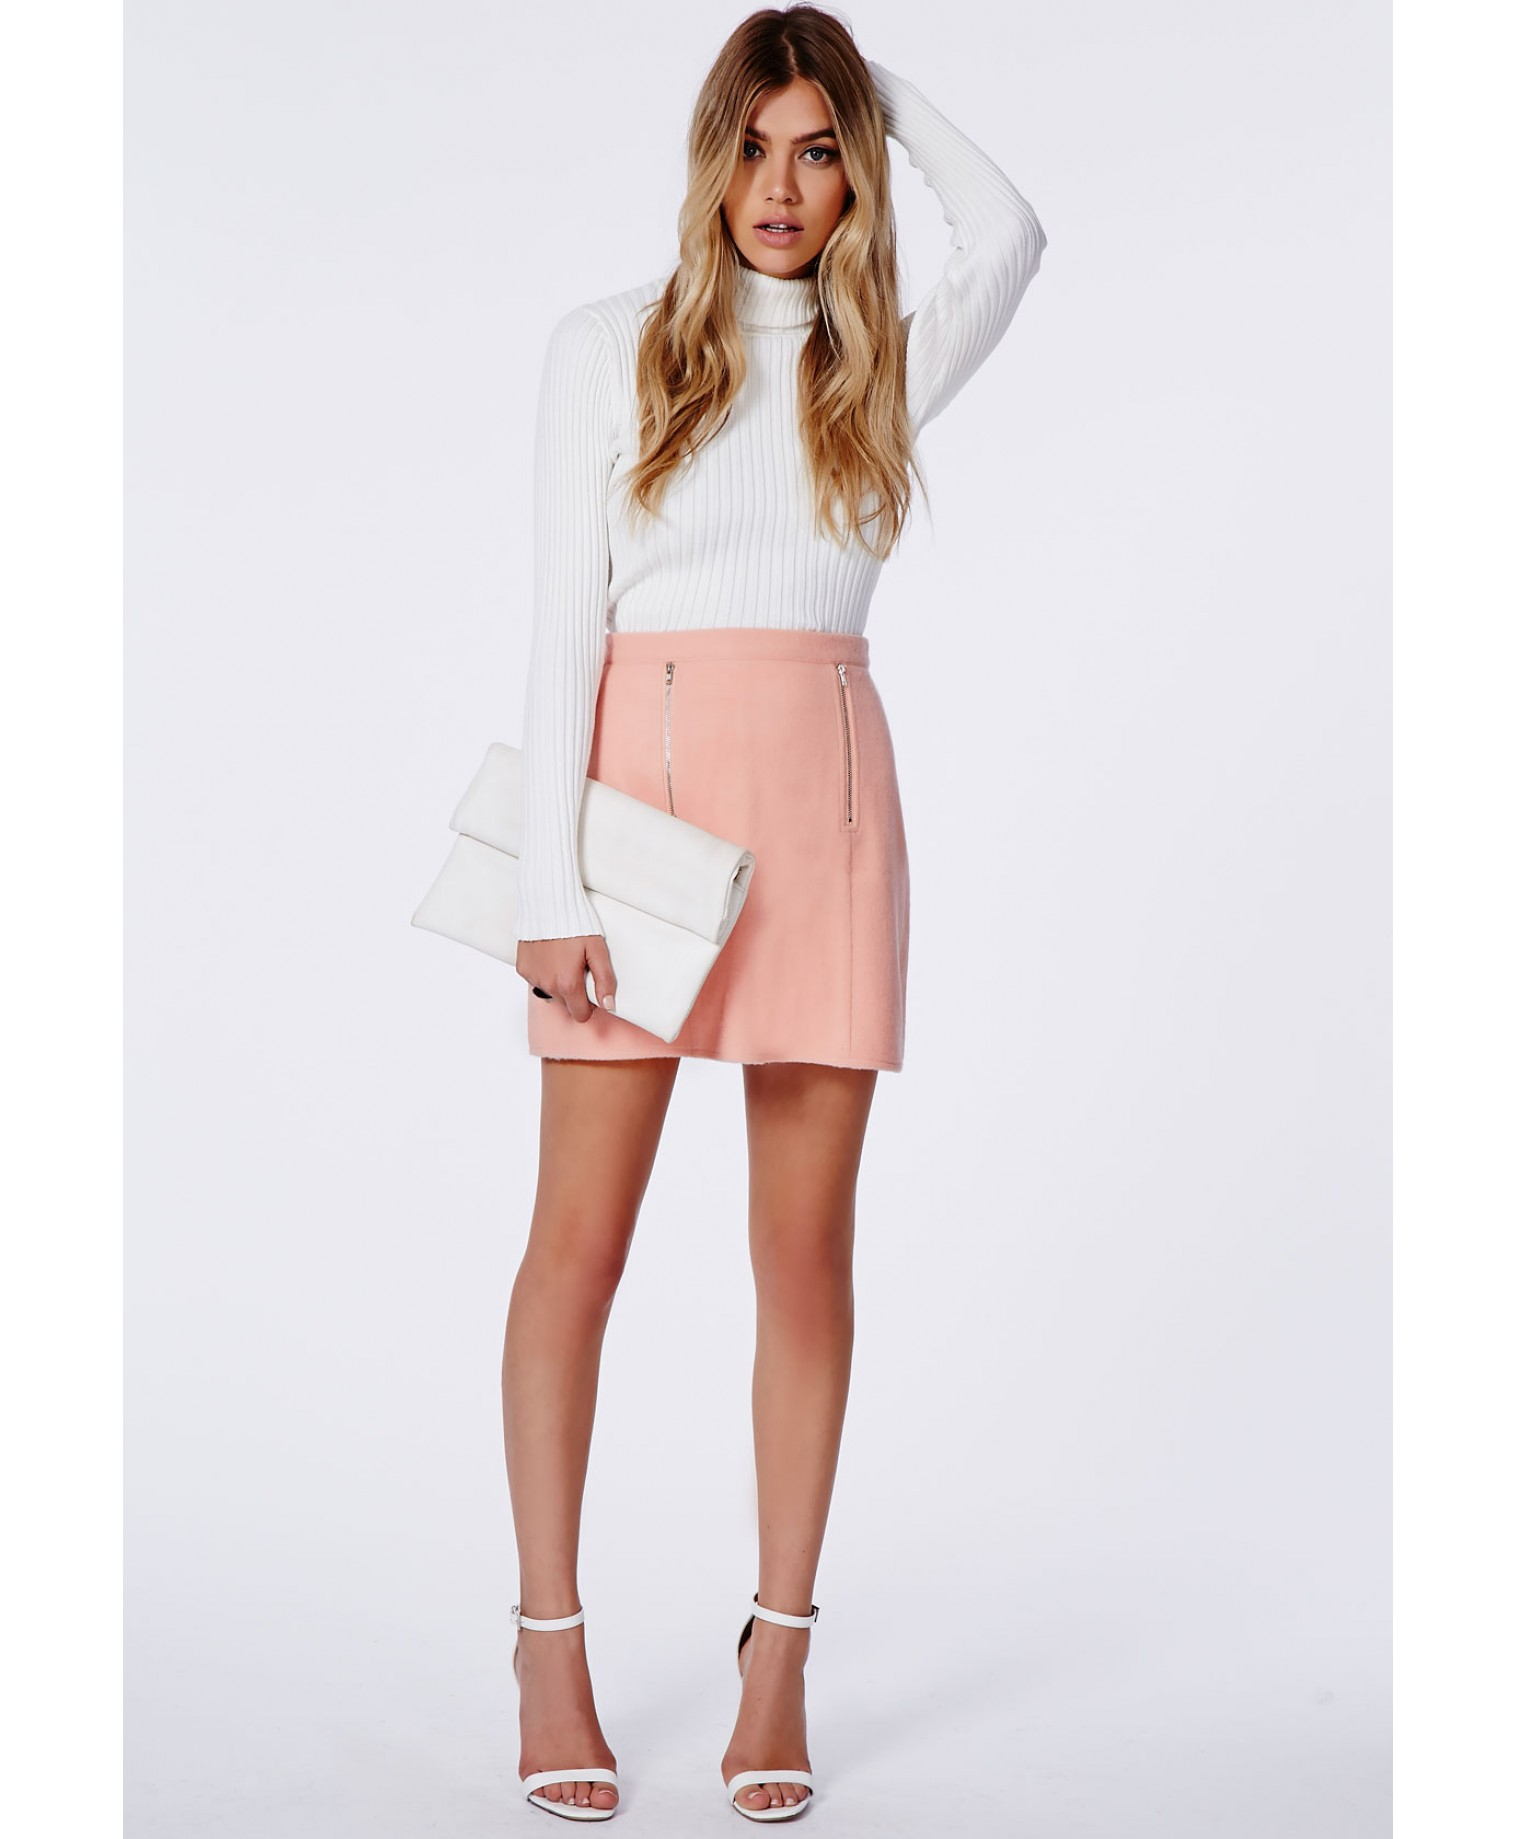 Missguided Beth Felt Zip Front A-Line Skirt Baby Pink in Pink | Lyst